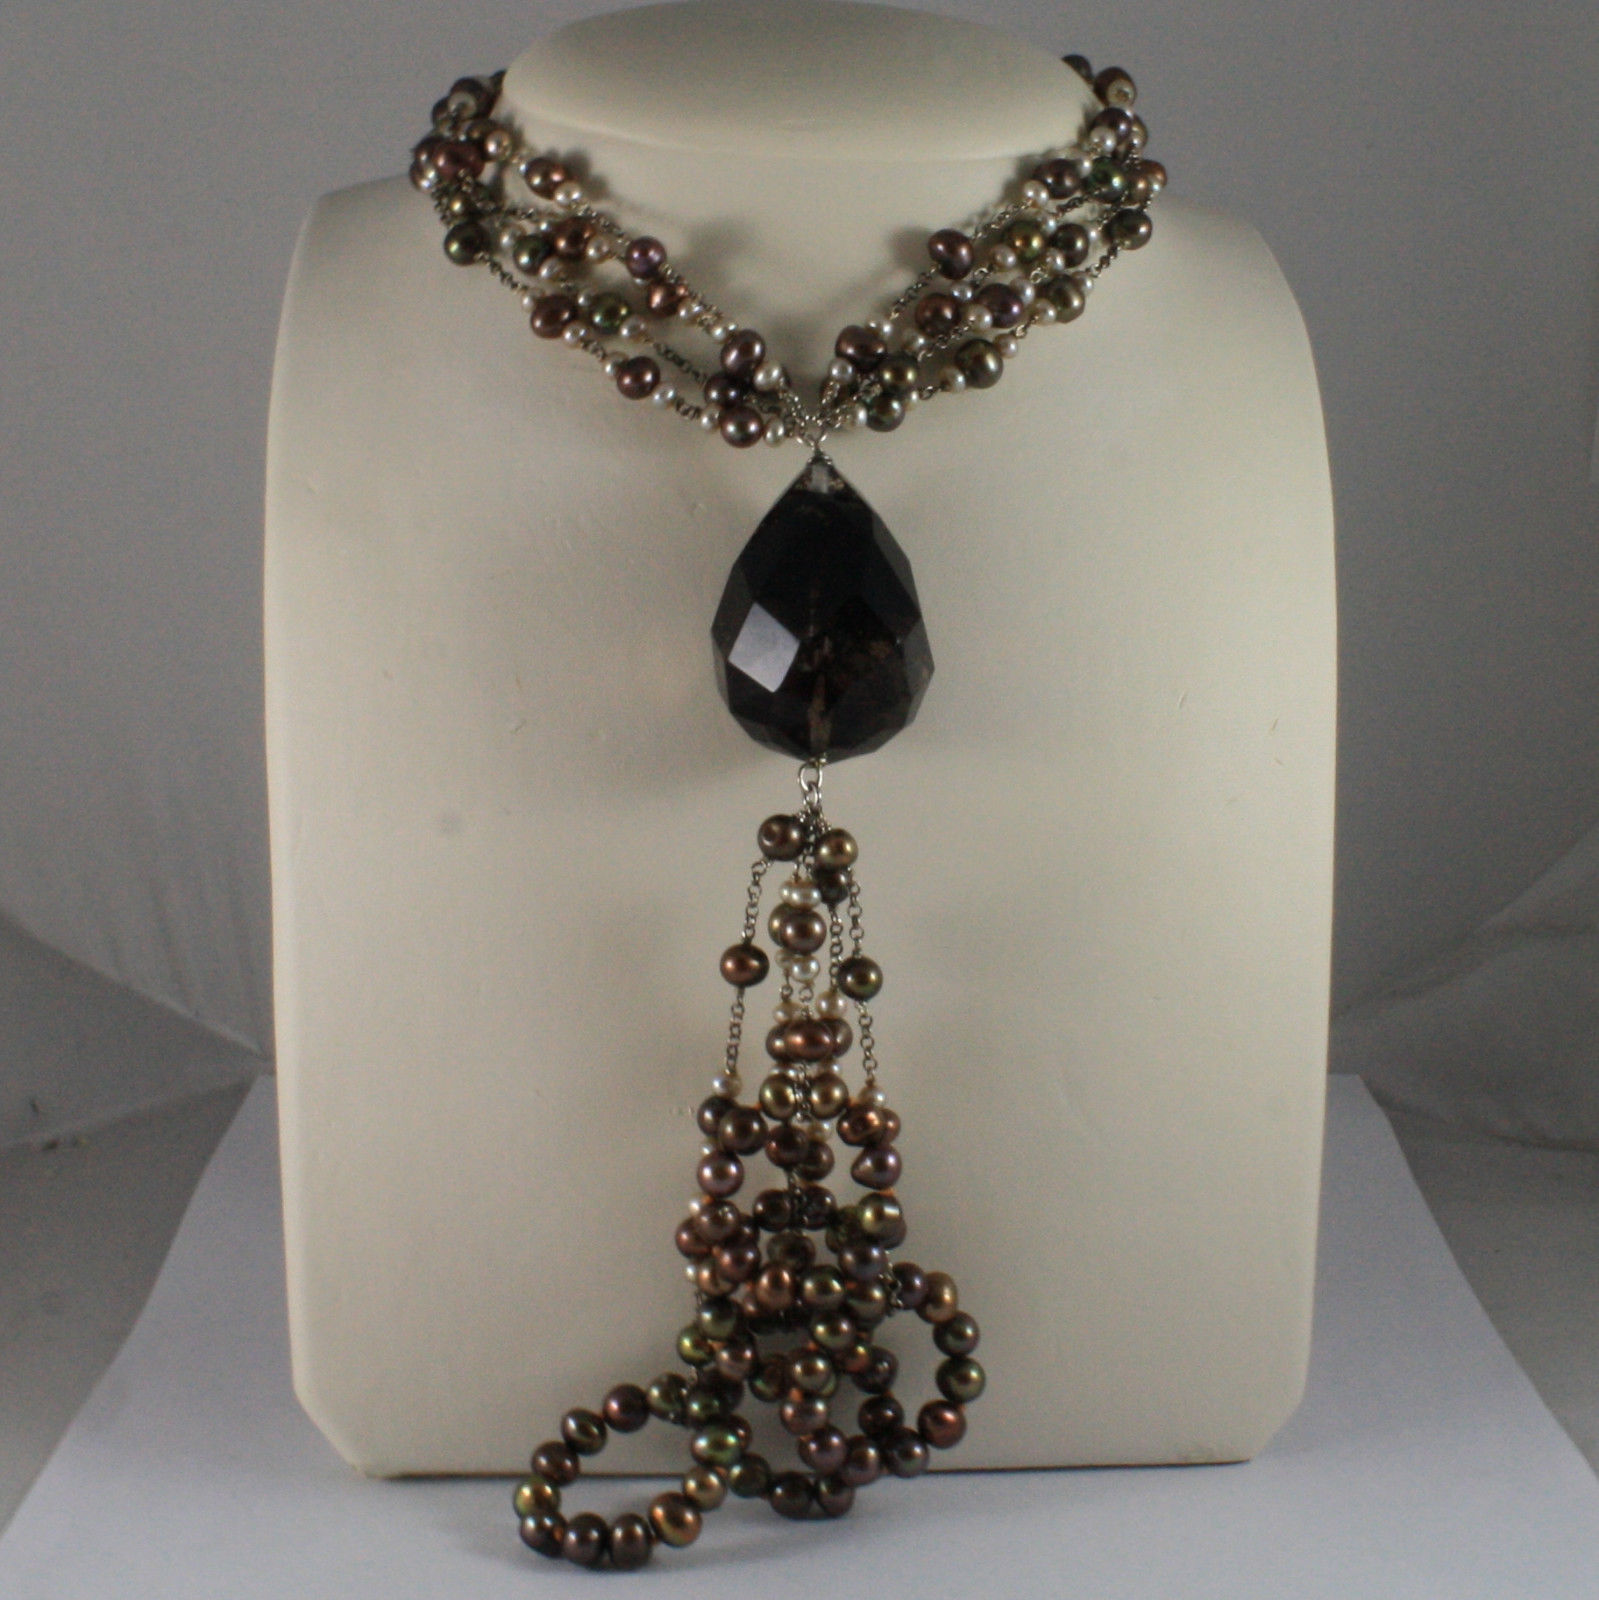 .925 SILVER RHODIUM NECKLACE WITH MULTI-COLOR PEARLS AND DROP OF SMOKY QUARTZ